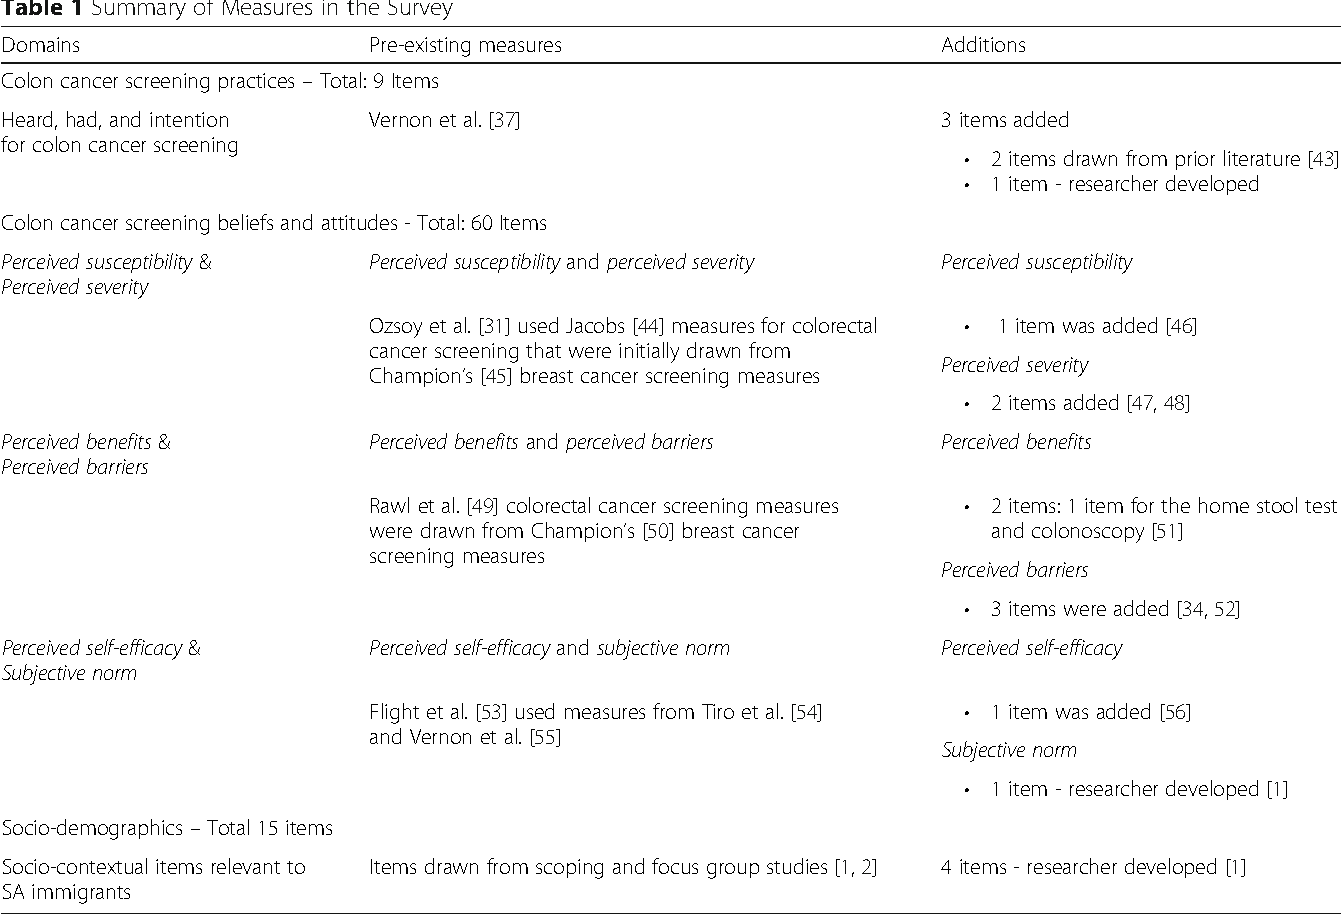 Cognitive Testing Of The Colon Cancer Screening Behaviours Survey With South Asian Immigrants In Canada Semantic Scholar